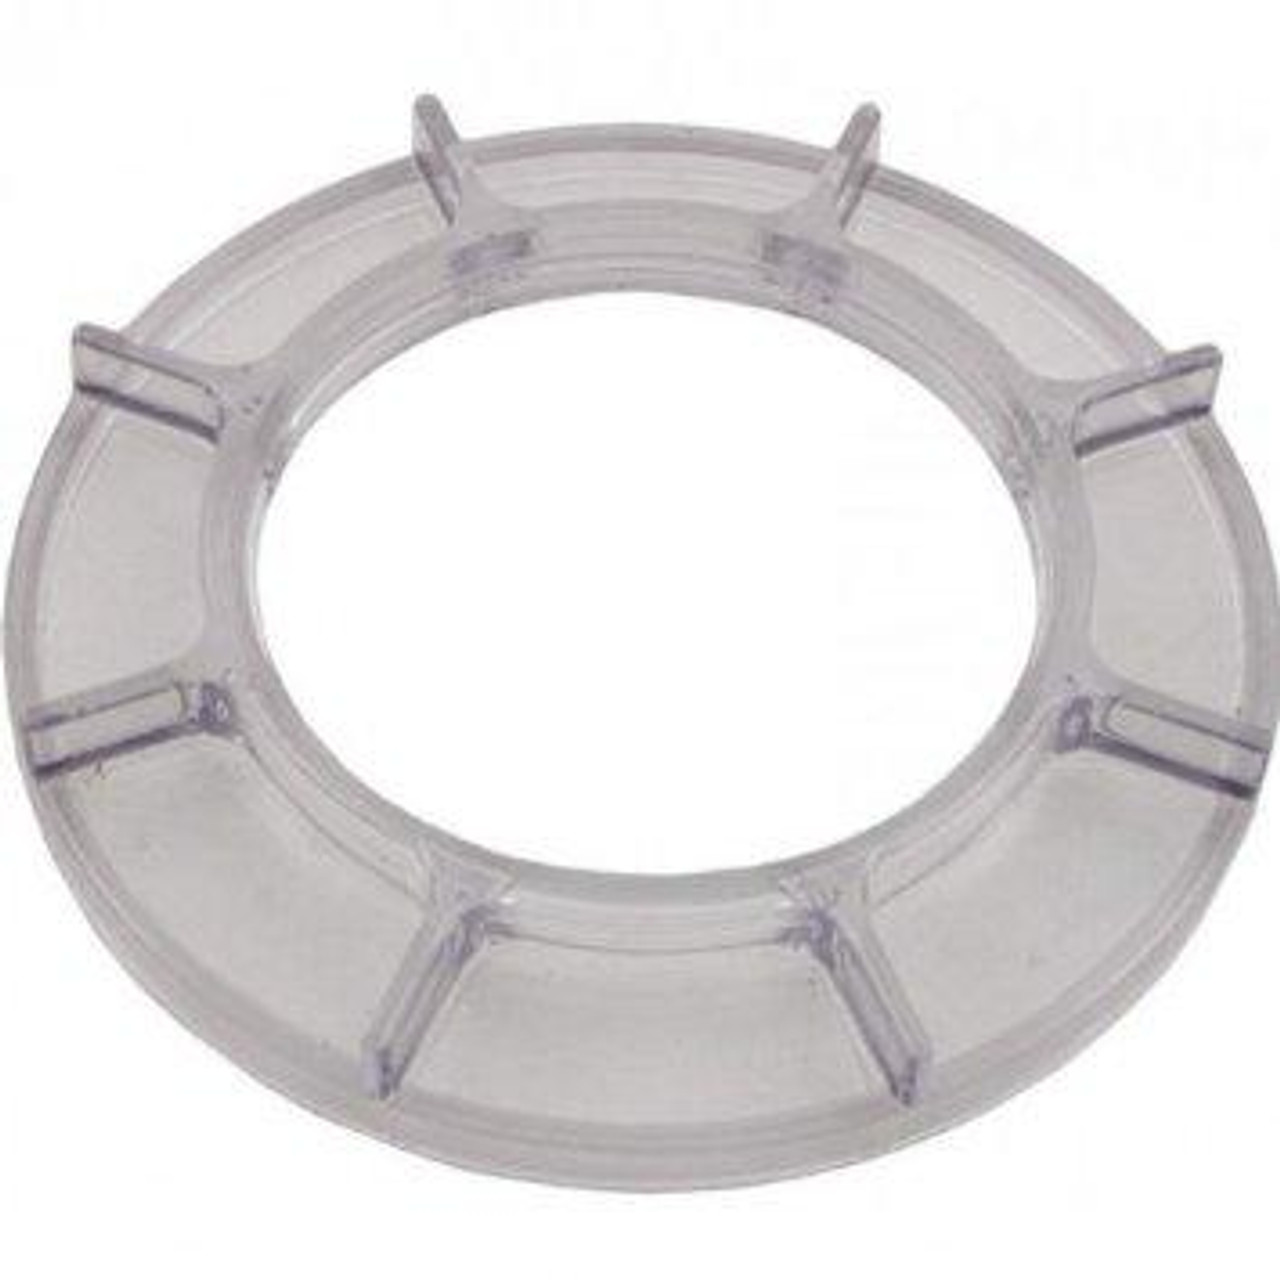 Pentair Aquatic Systems 05103-0001 Hex Nut Large